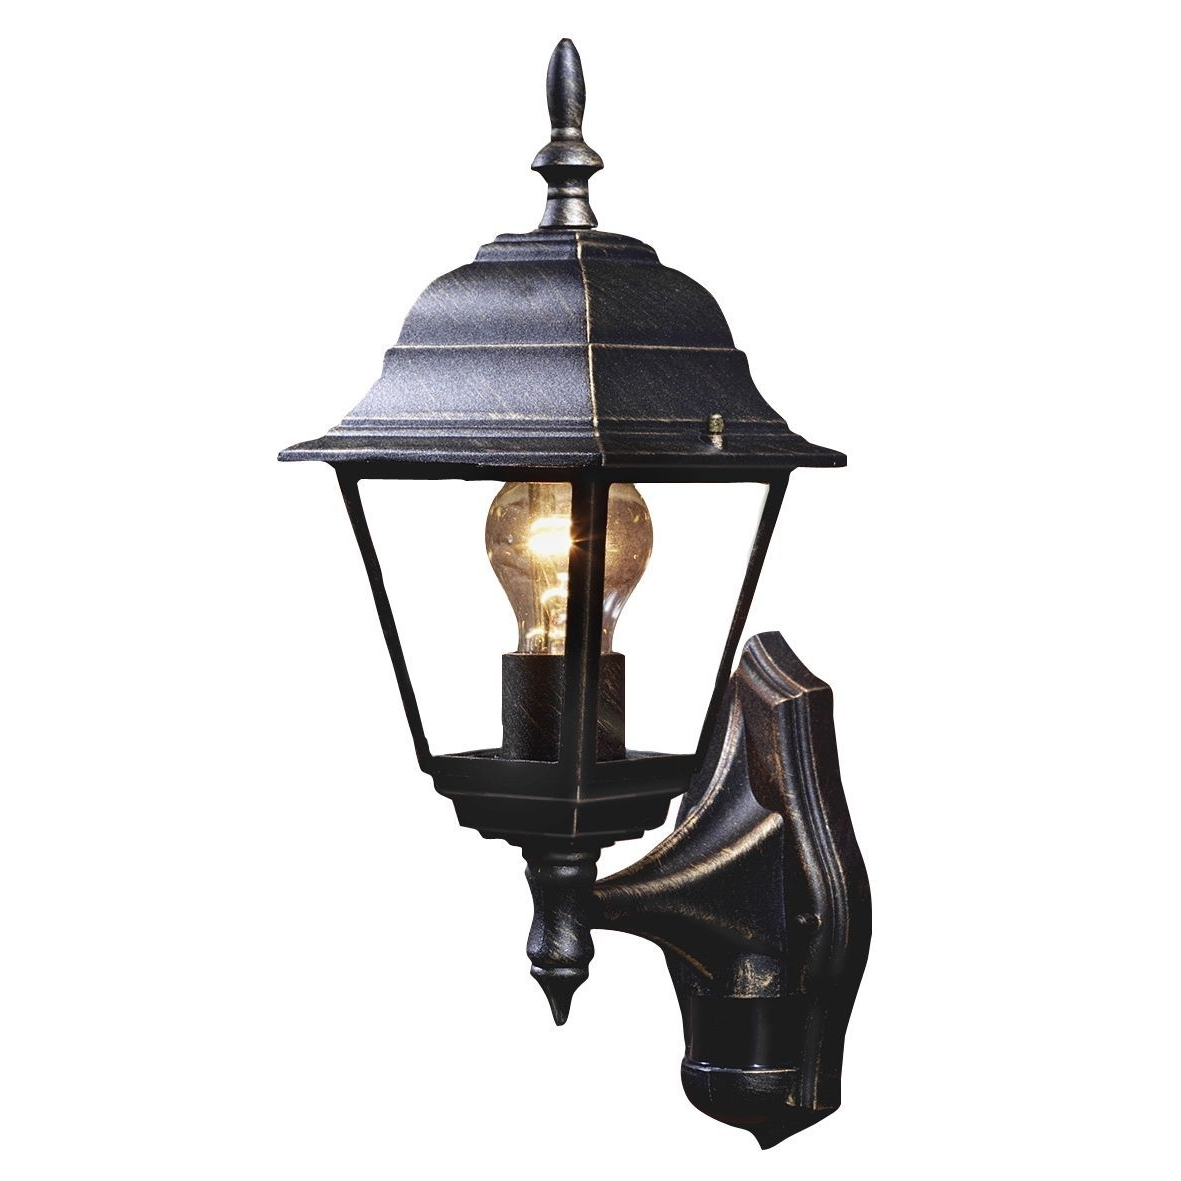 Outdoor Mains Lanterns In Newest B&q Polperro Antique Effect Black 60W Mains Powered External Pir (Gallery 7 of 20)